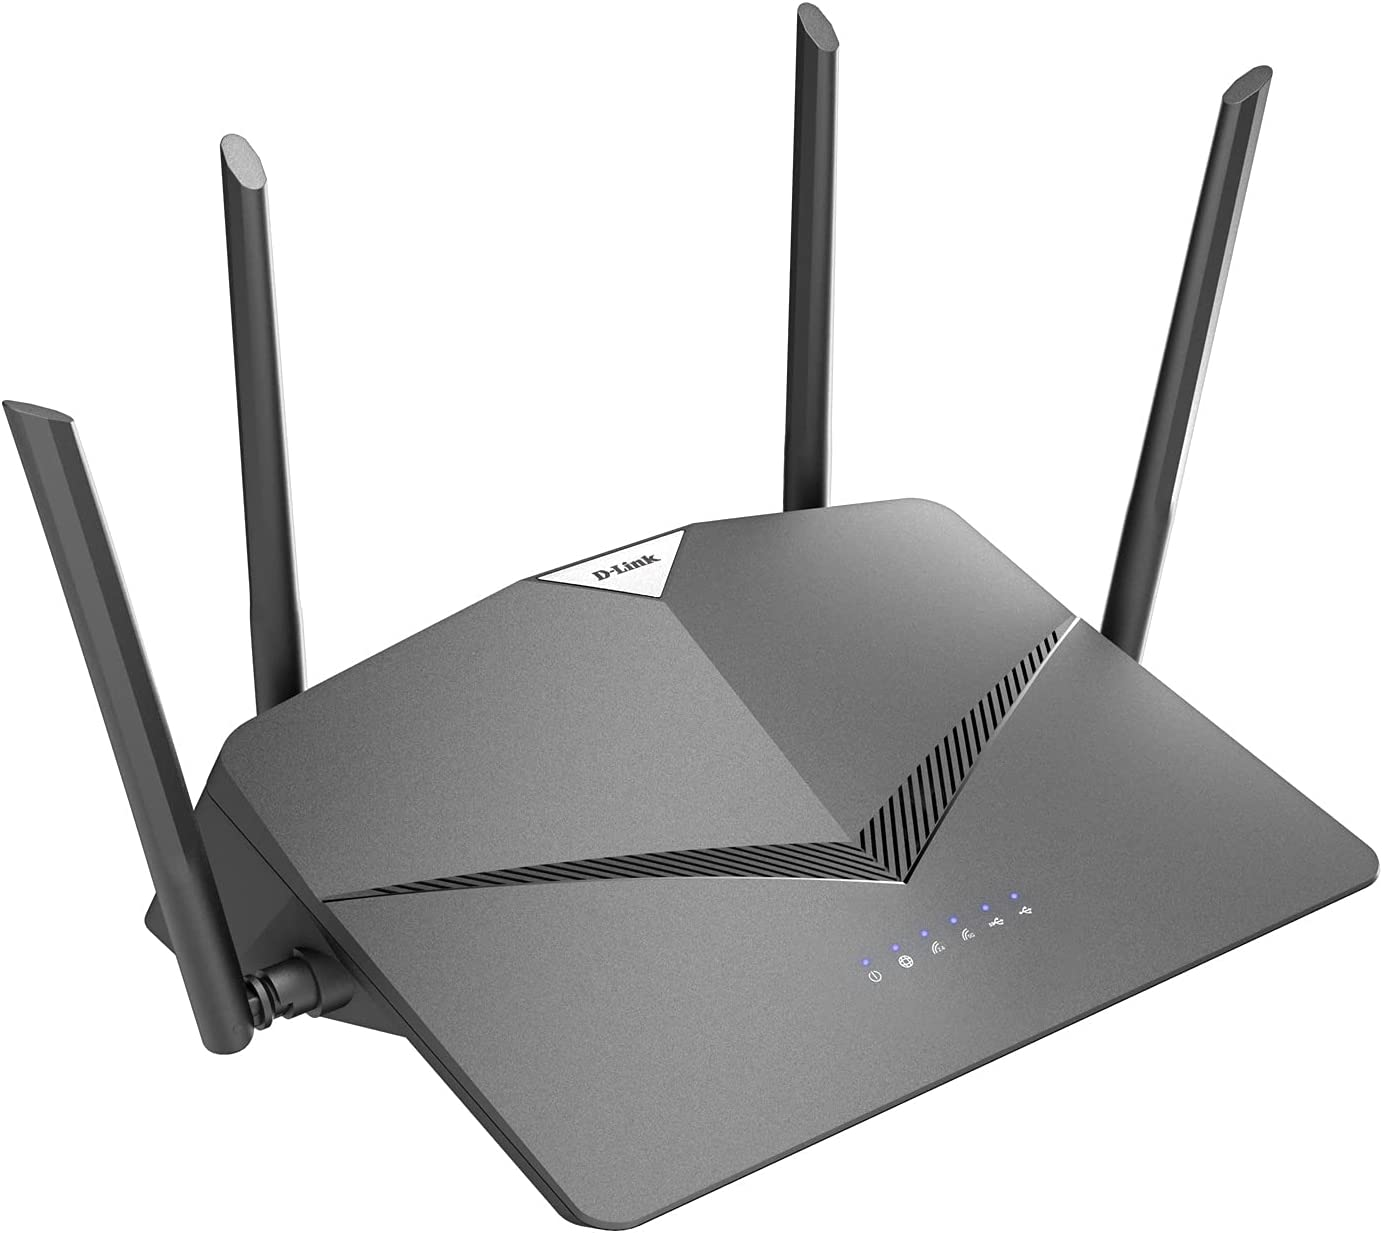 D-Link WiFi Router AC2600 EasyMesh Smart Internet Network Compatible with Alexa & Google Assistant, MU-MIMO Dual Band Gigabit Gaming Mesh (DIR-2640-US)